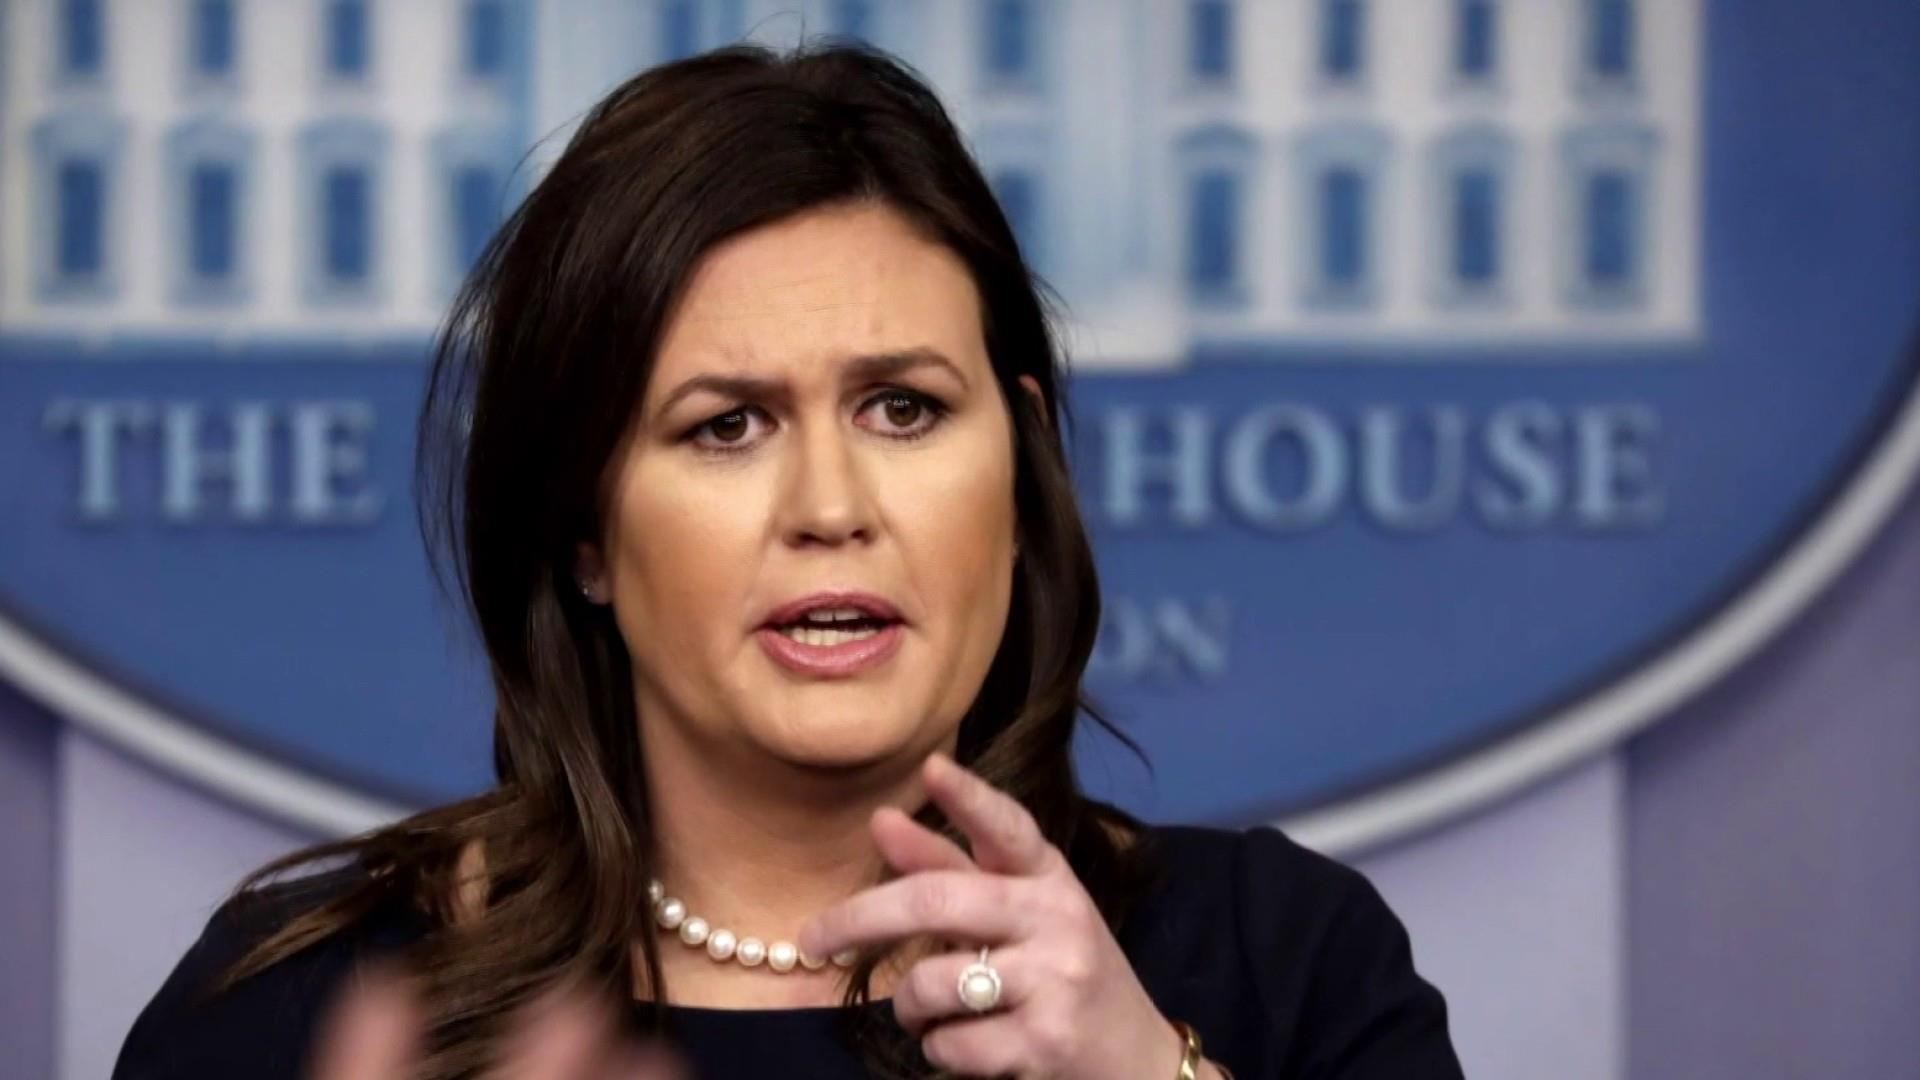 Sarah Sanders caught lying. So she lies again.